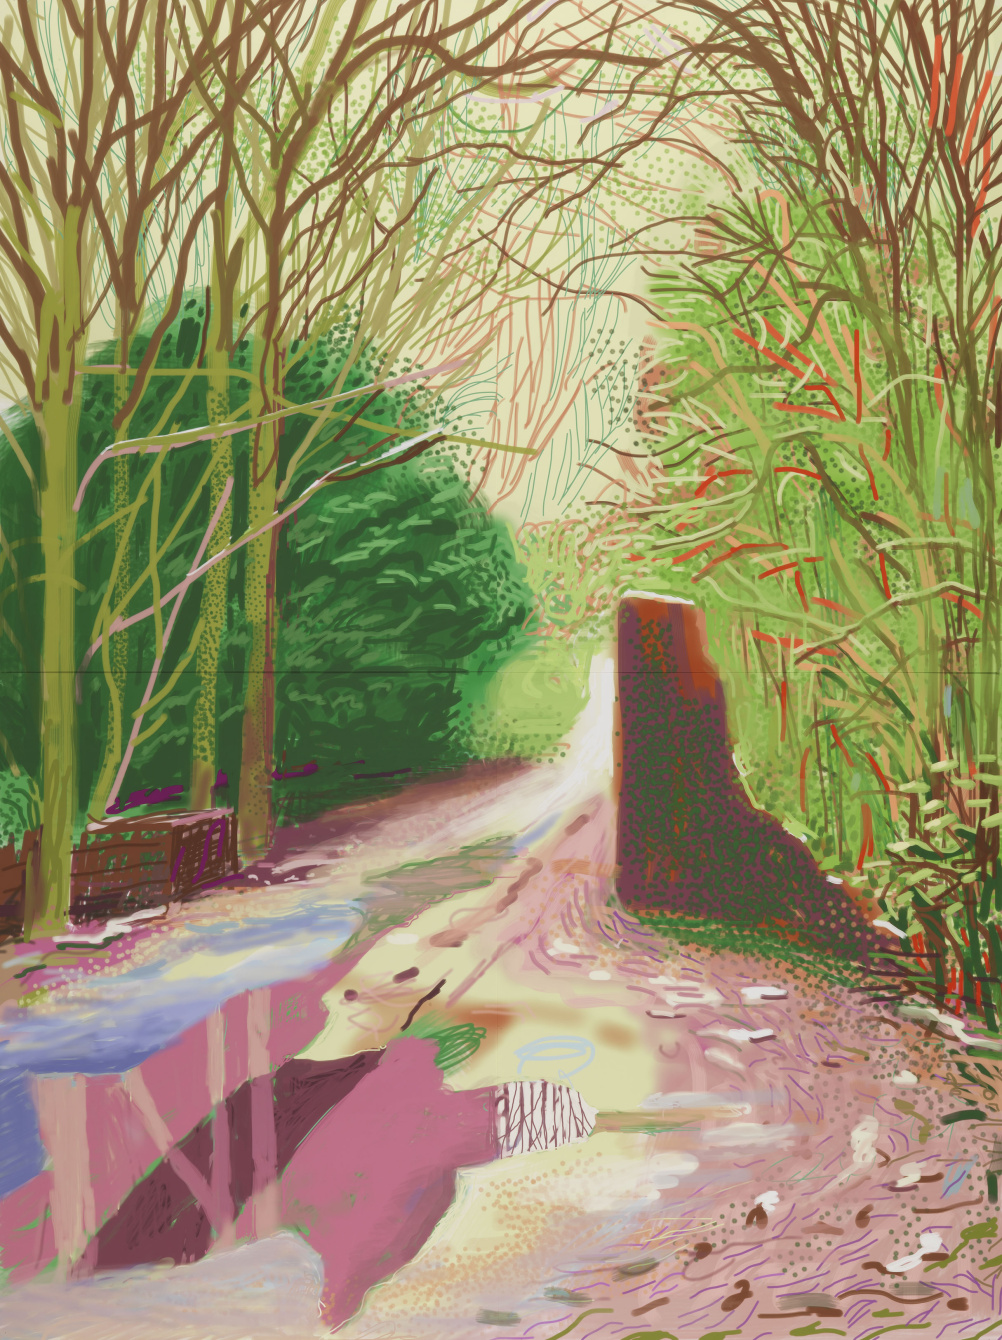 David Hockney  The Arrival of Spring in Woldgate, East Yorkshire in 2011 (twenty eleven) - 2 January 2011 iPad drawing printed on four sheets of paper, mounted on four sheets of dibond, edition 5 of 10